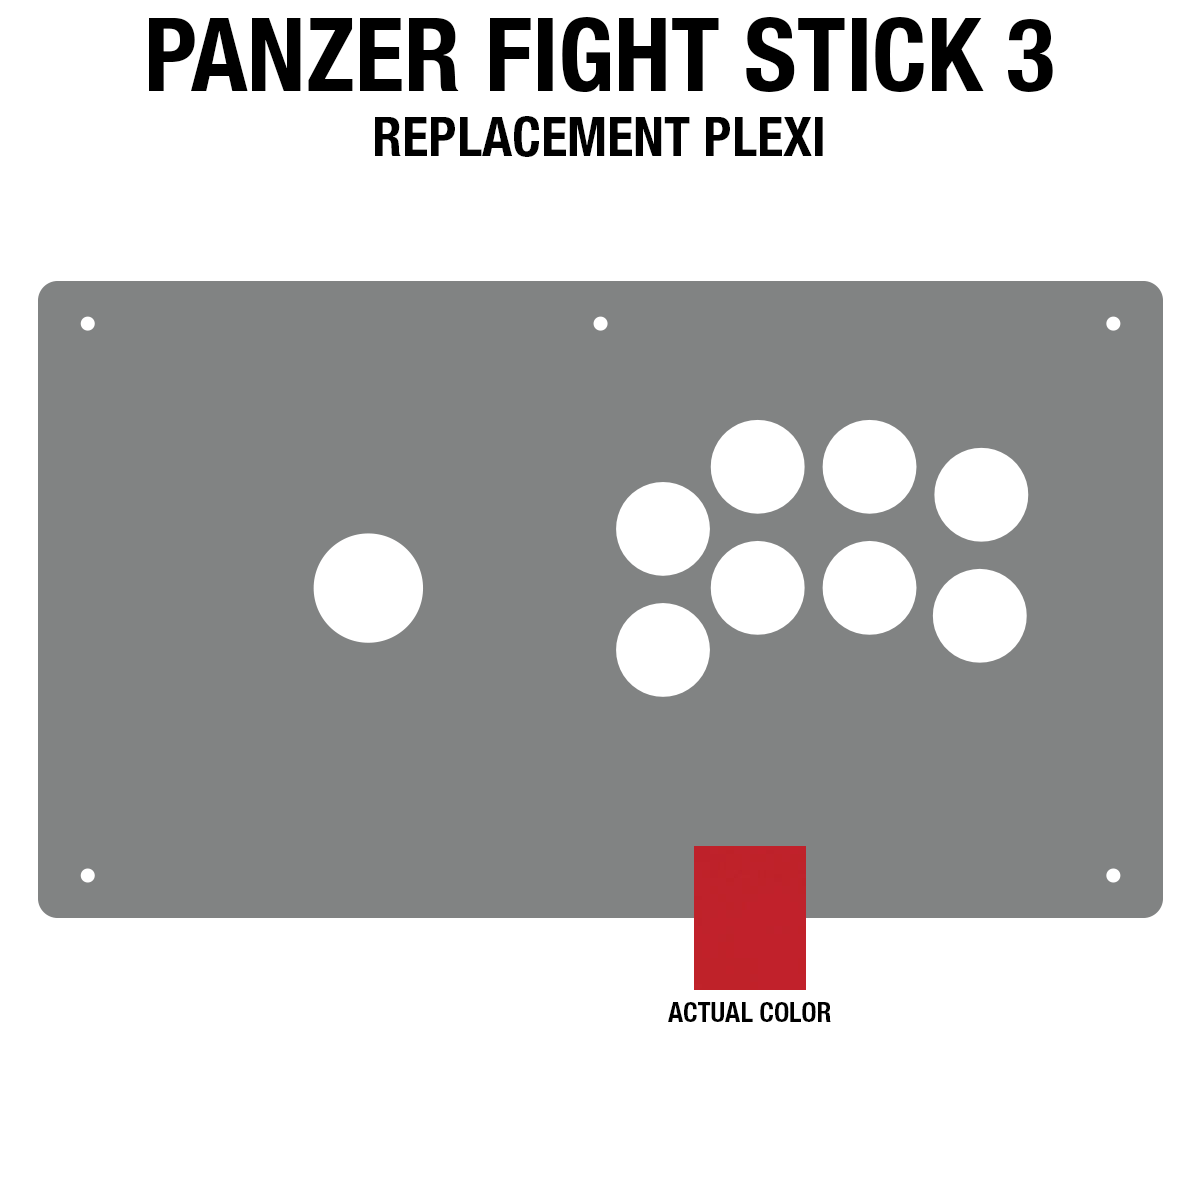 Panzer Fight Stick 3 [KOREAN EDITION] Plexi - Red Frosted (8 Buttons)